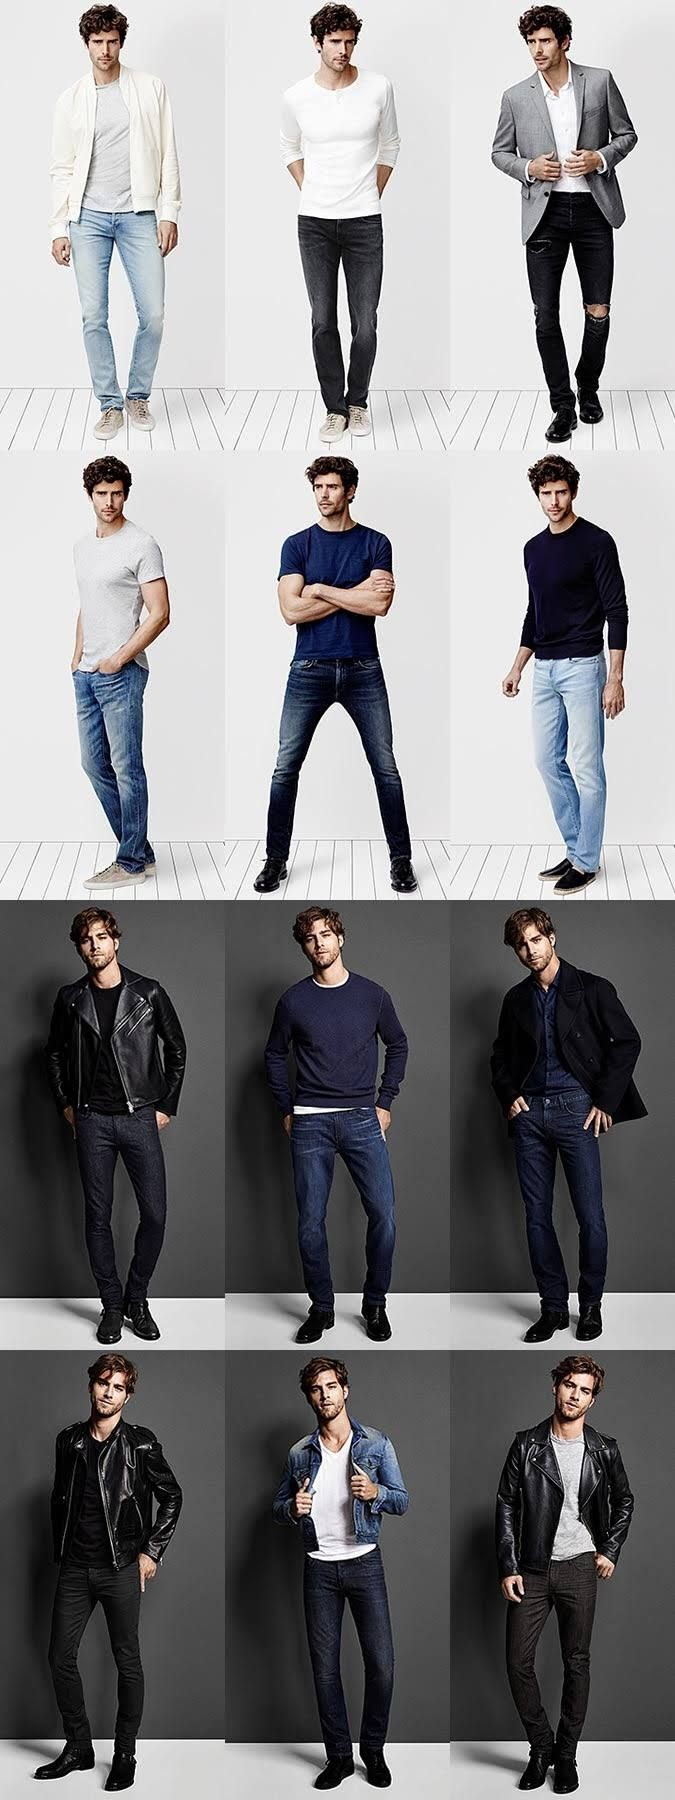 Men's Fashion — The Denim Brands & Cuts You Need To Know In 2015 |...